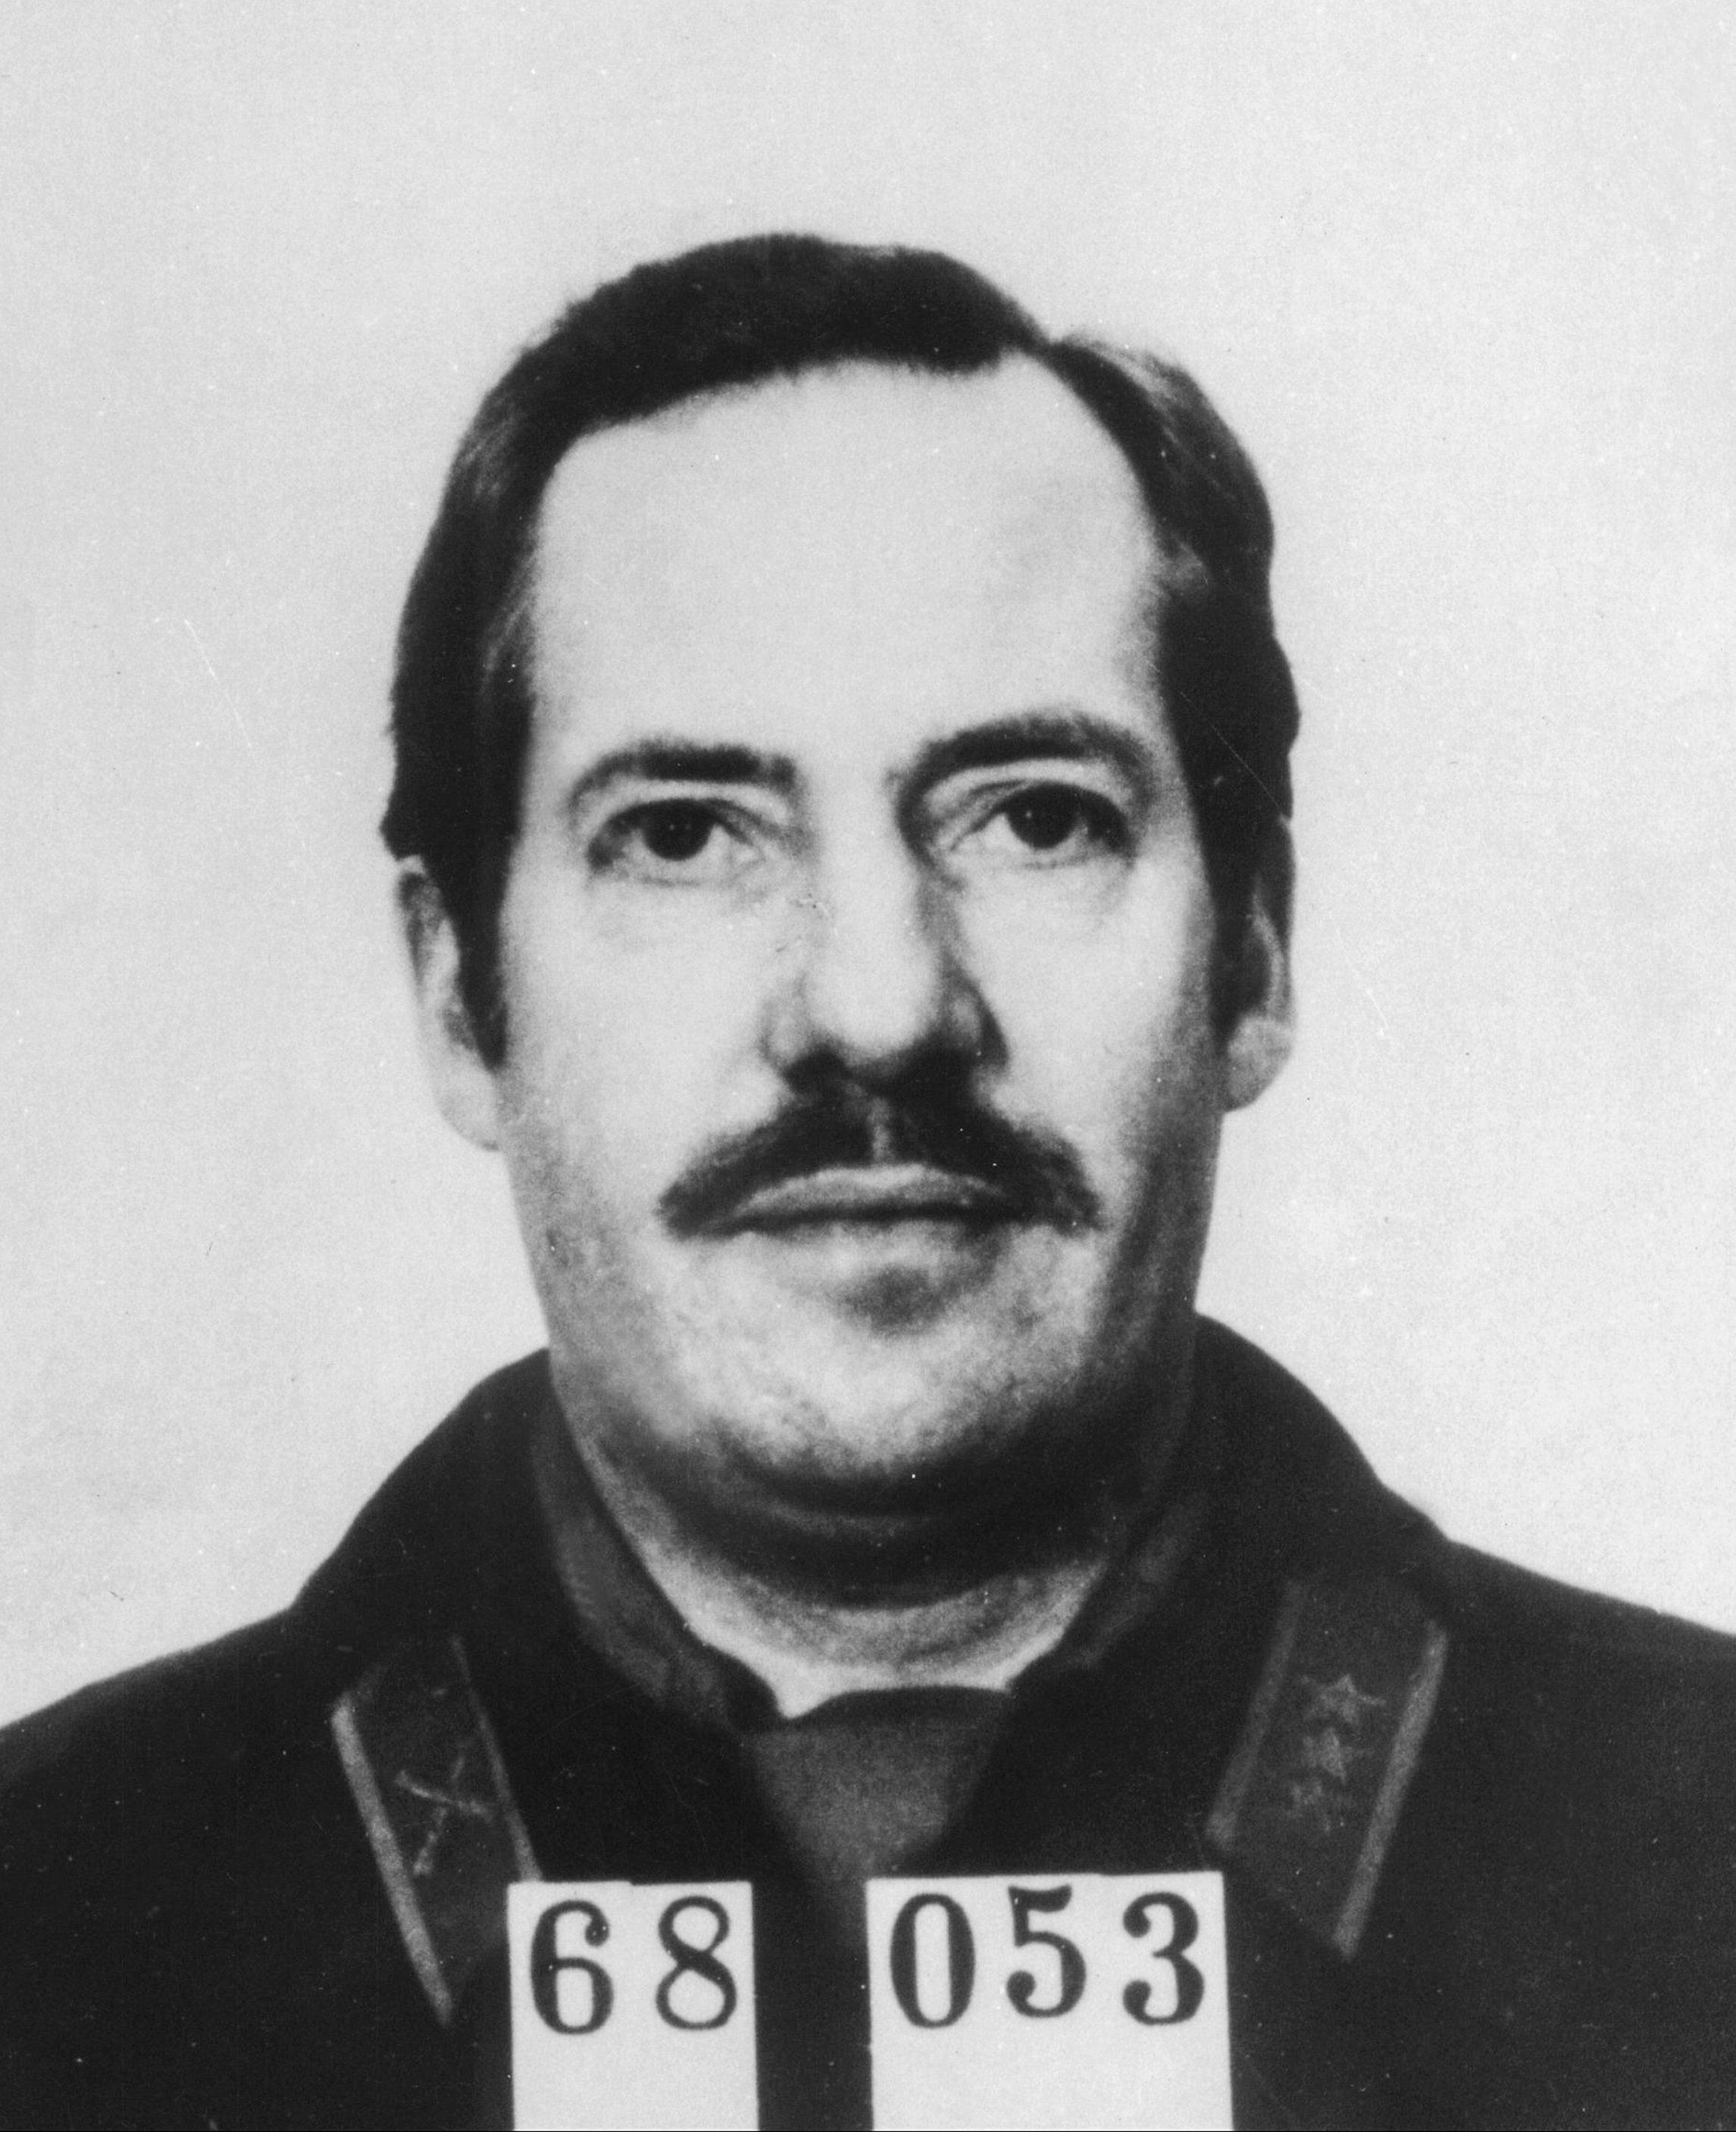 Stig Bergling, Soviet spy who fled from Swedish prison, dies